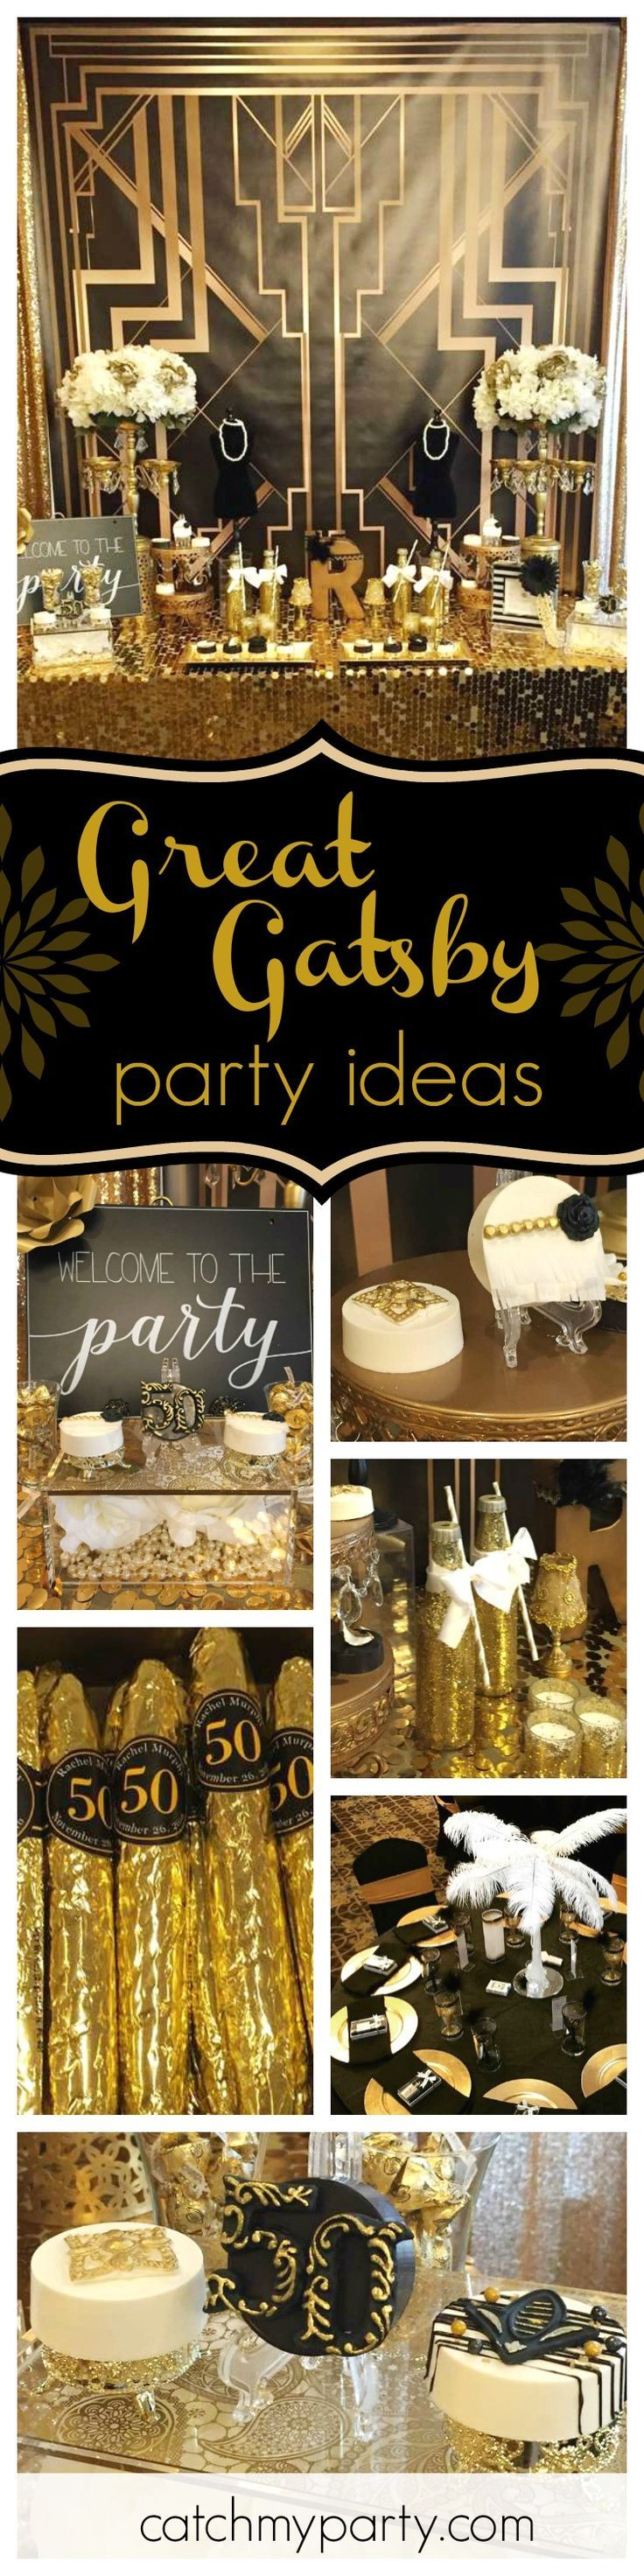 "Great Gatsby / Birthday ""The Roaring 20's (Great Gatsby) 50th birthday party"" Sue Jones"